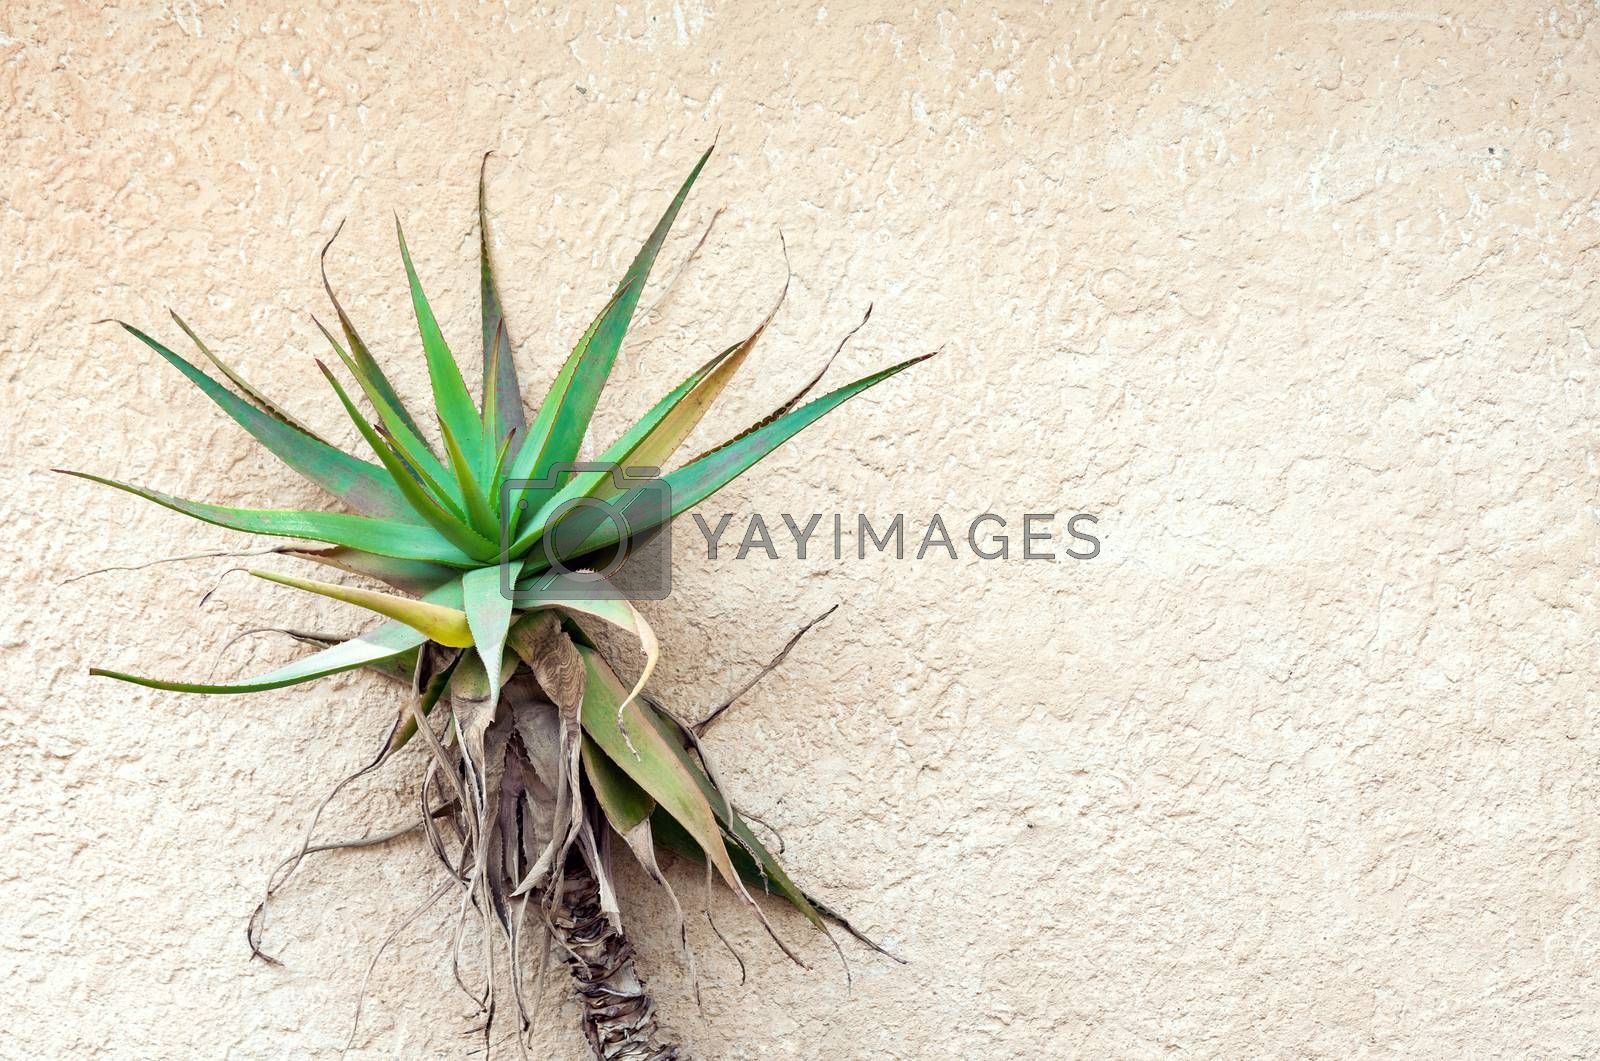 Tropical plant growing against concrete wall. Plenty of copy space on the right